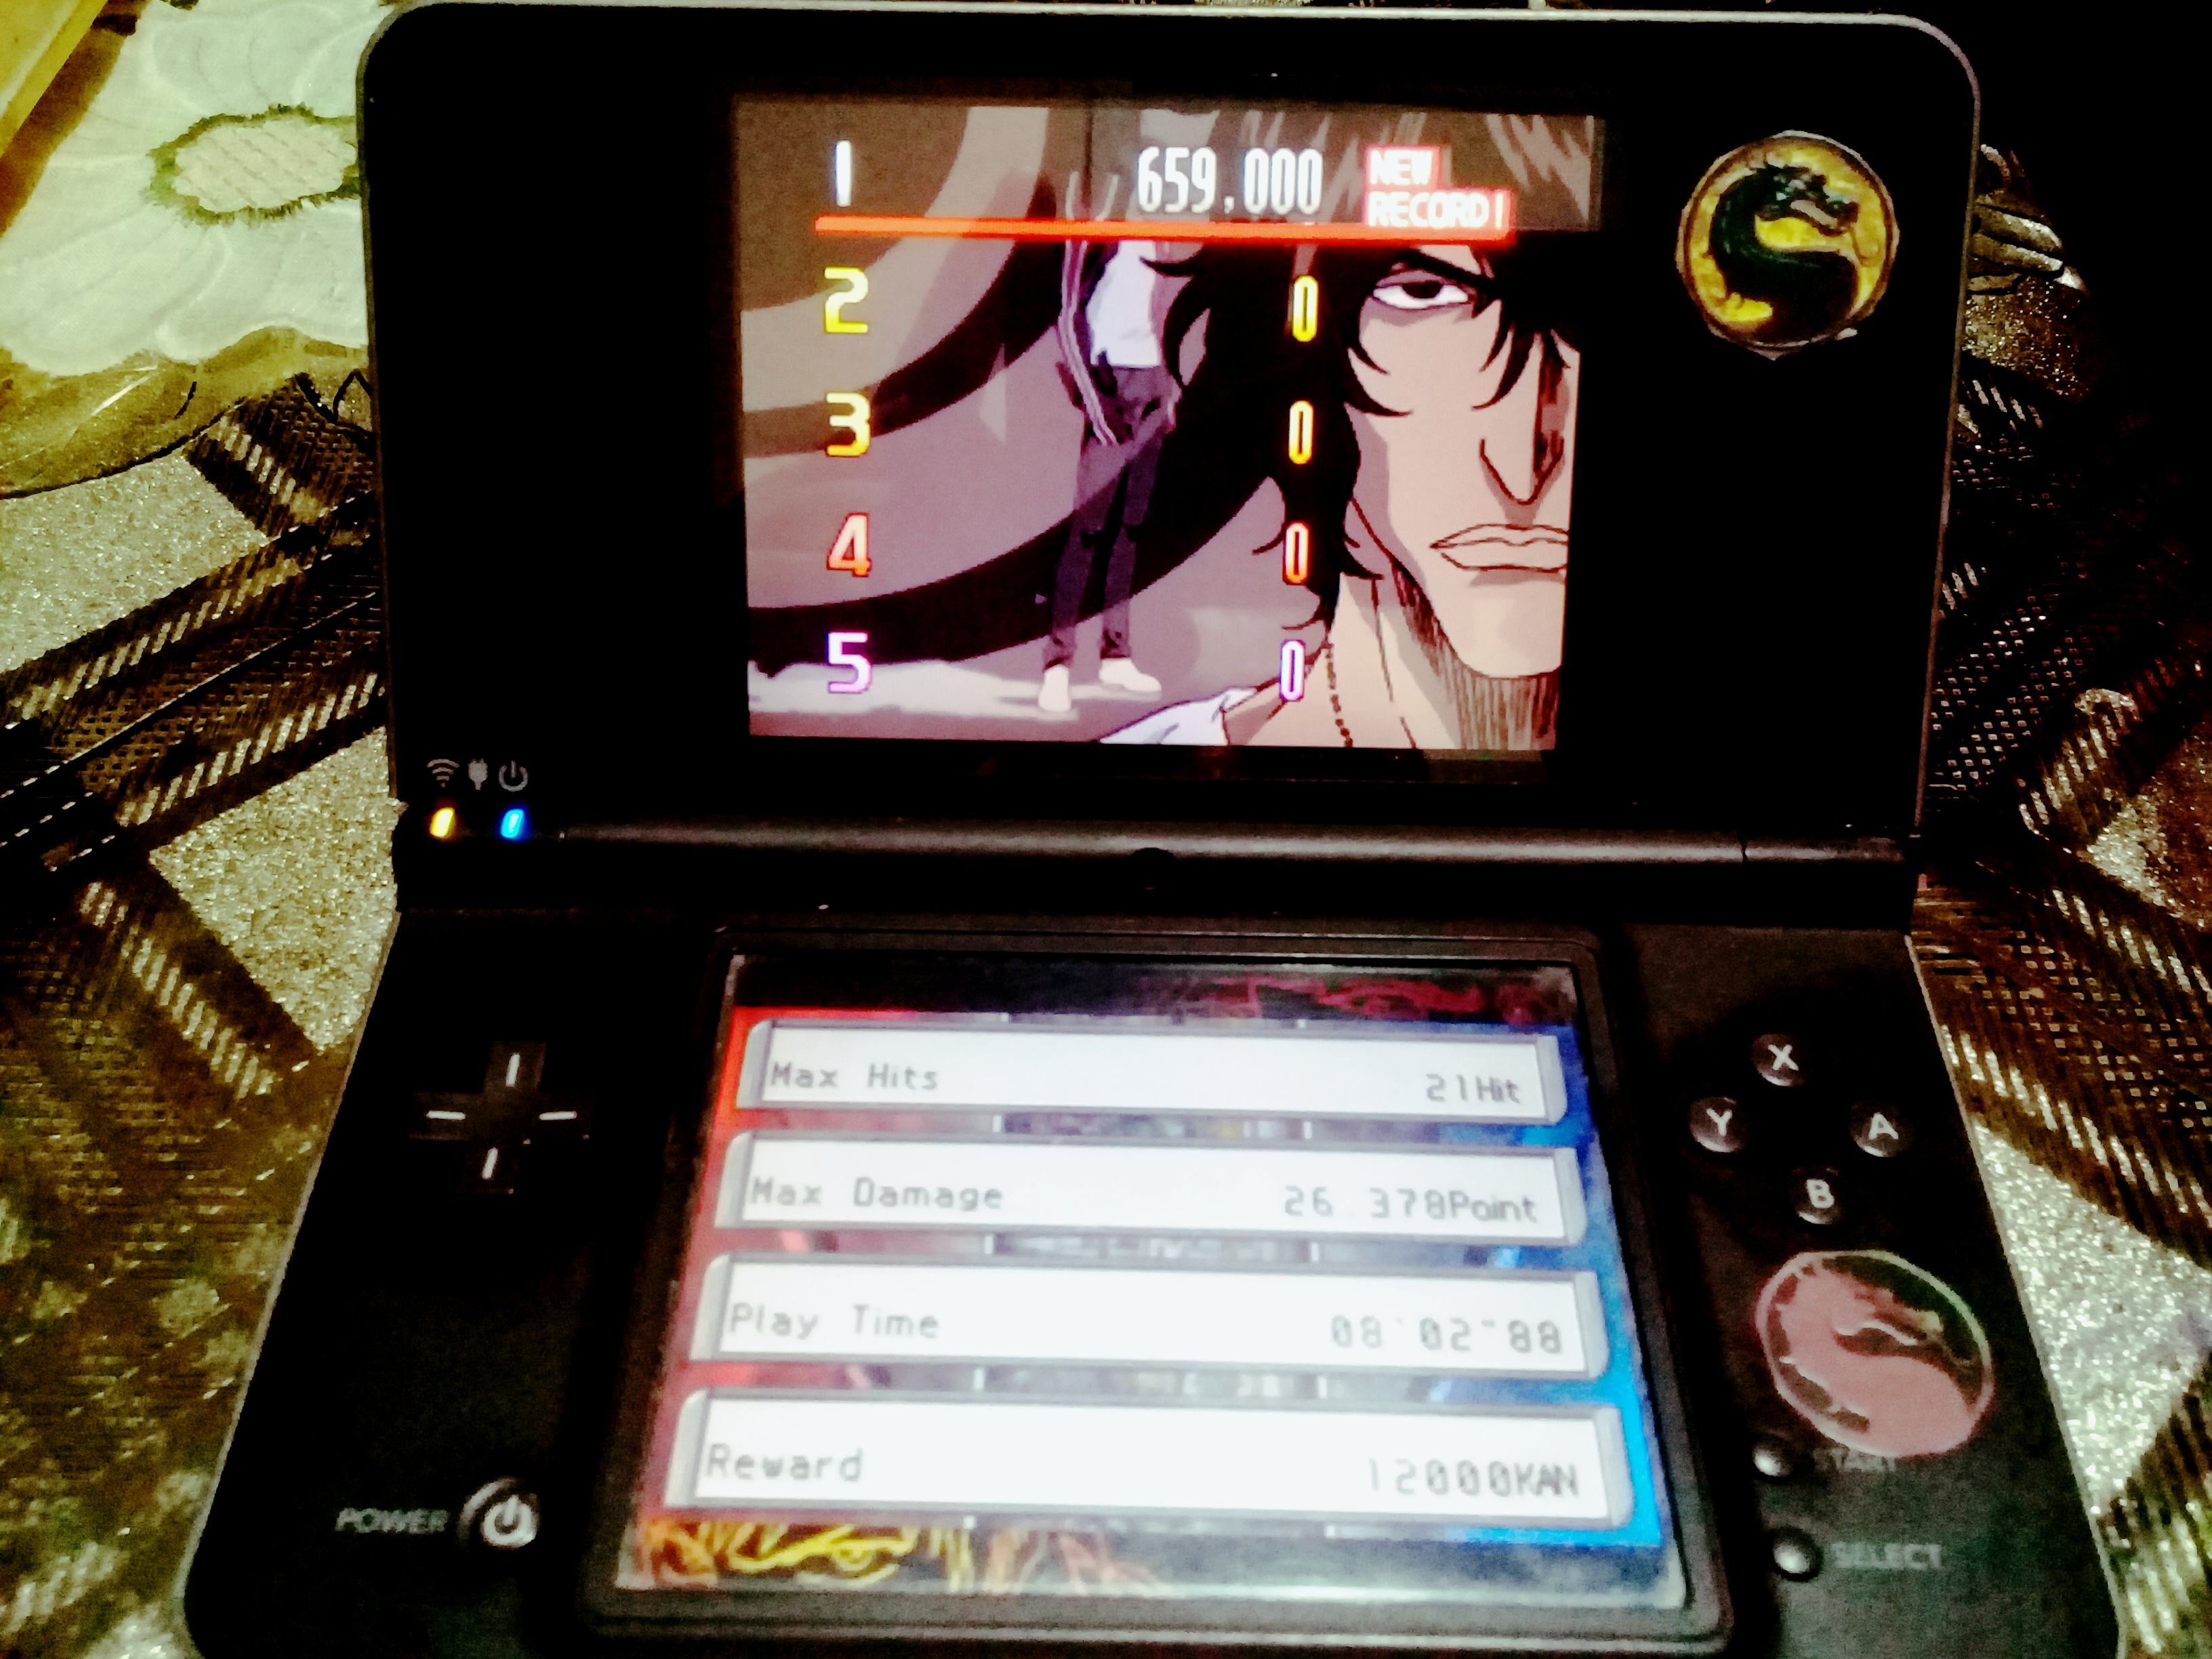 omargeddon: Bleach: The Blade Of Fate: Arcade Mode: Chad [Normal] (Nintendo DS) 659,000 points on 2020-10-05 11:20:12